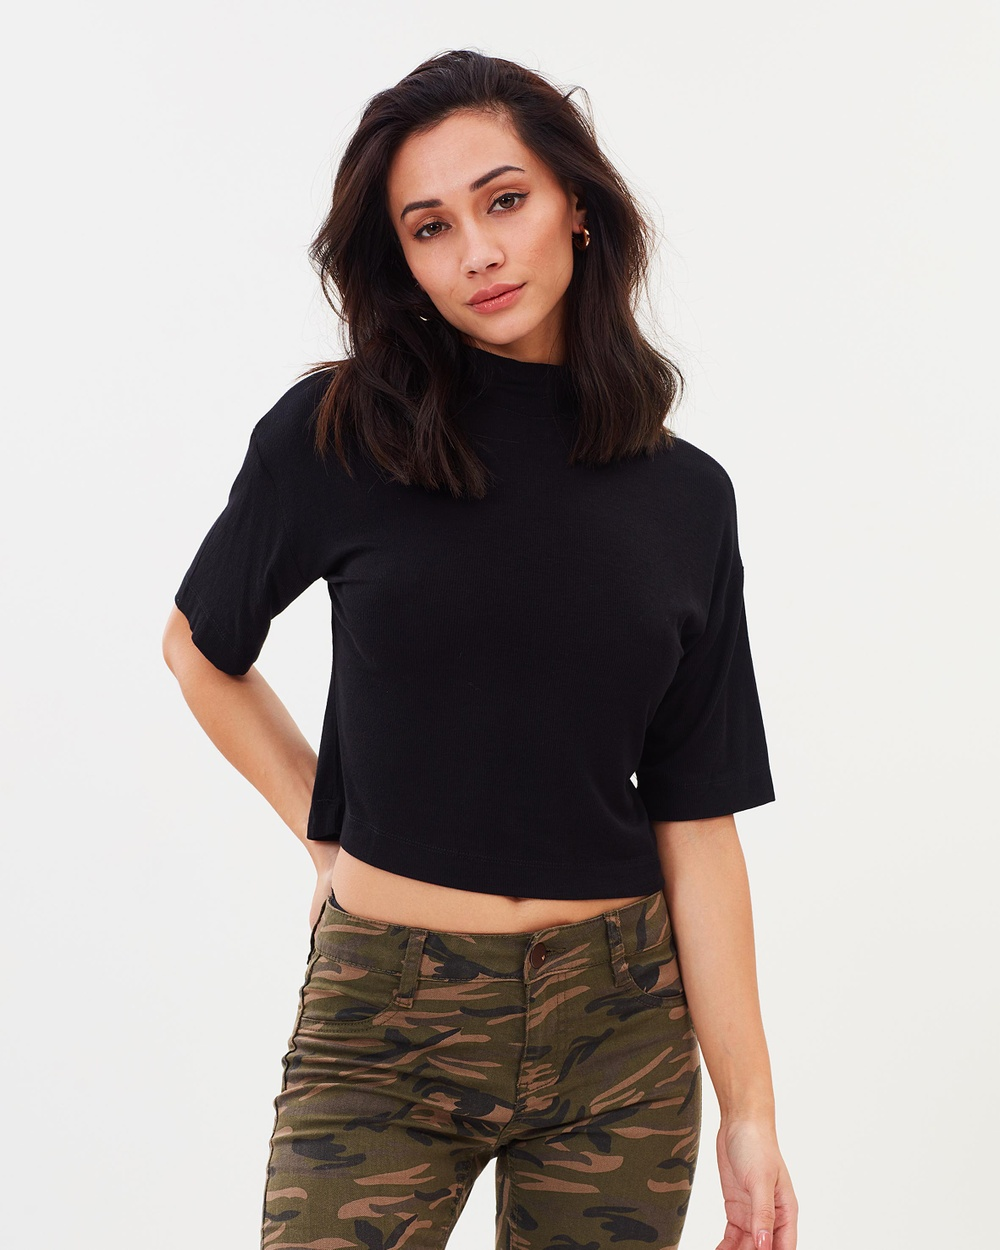 Cotton On Renee Mock Neck Rib Tee Cropped tops Black Renee Mock Neck Rib Tee